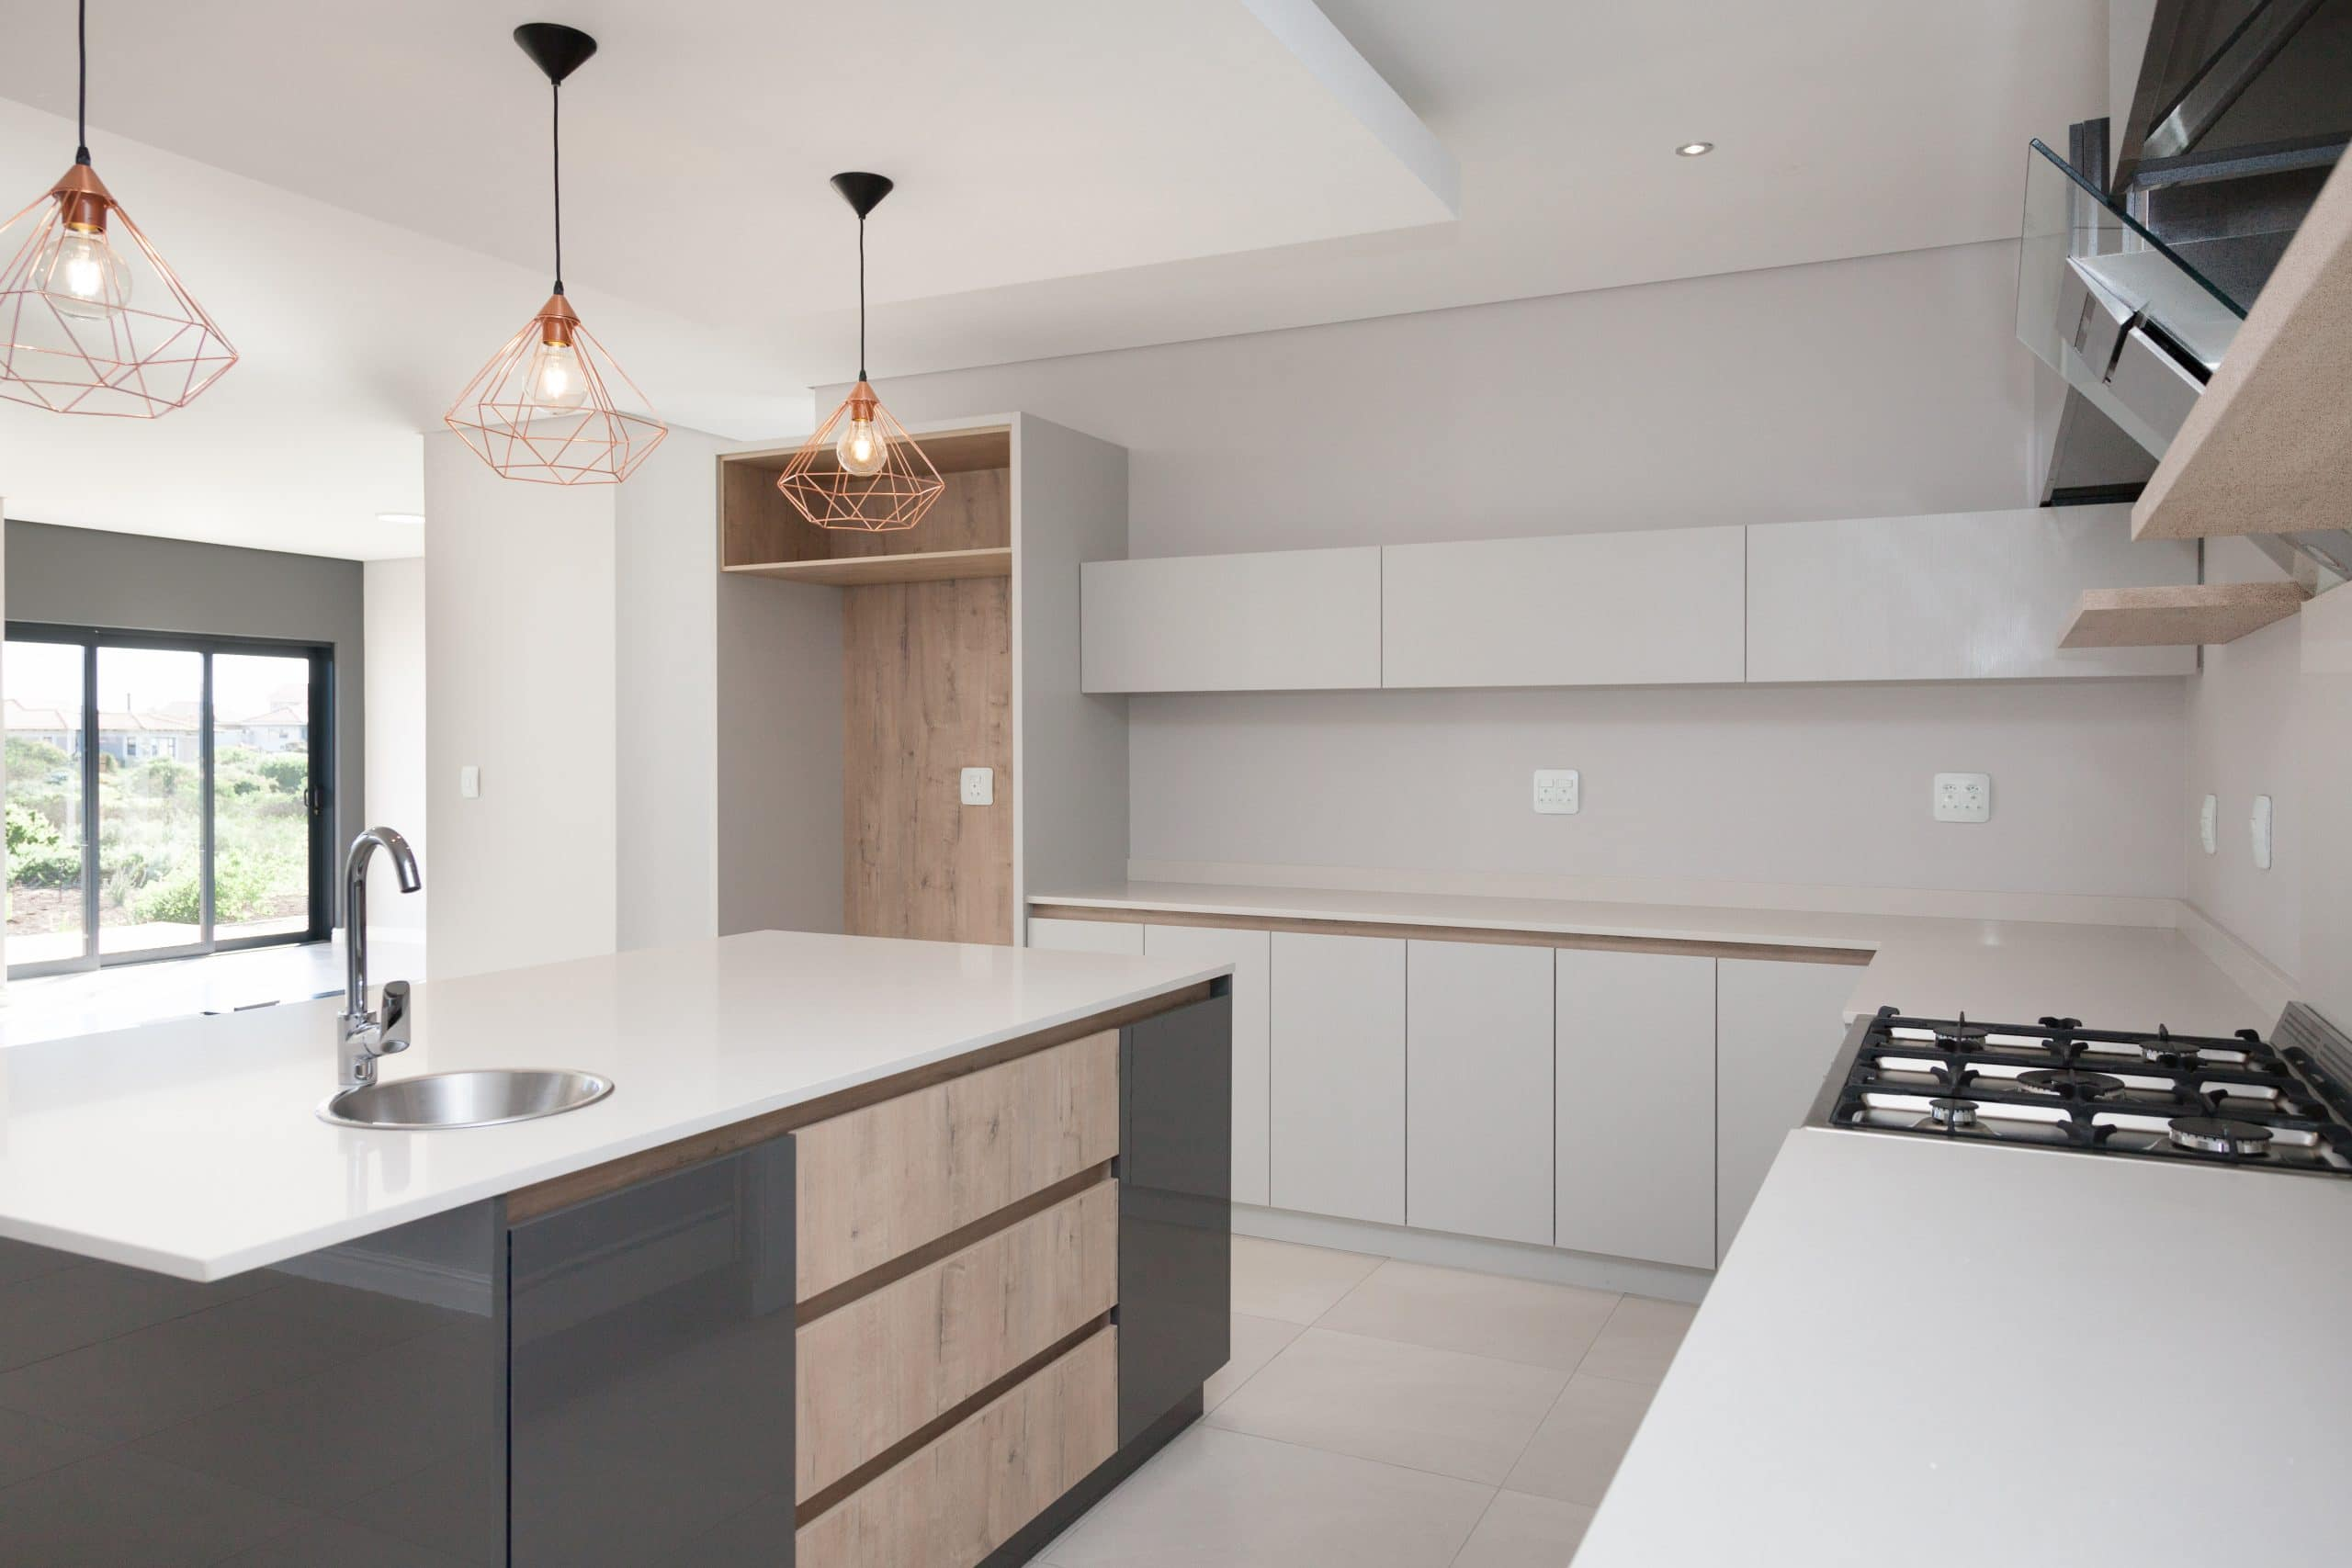 modern light dark grey with wooden kitchen and rose gold pendants